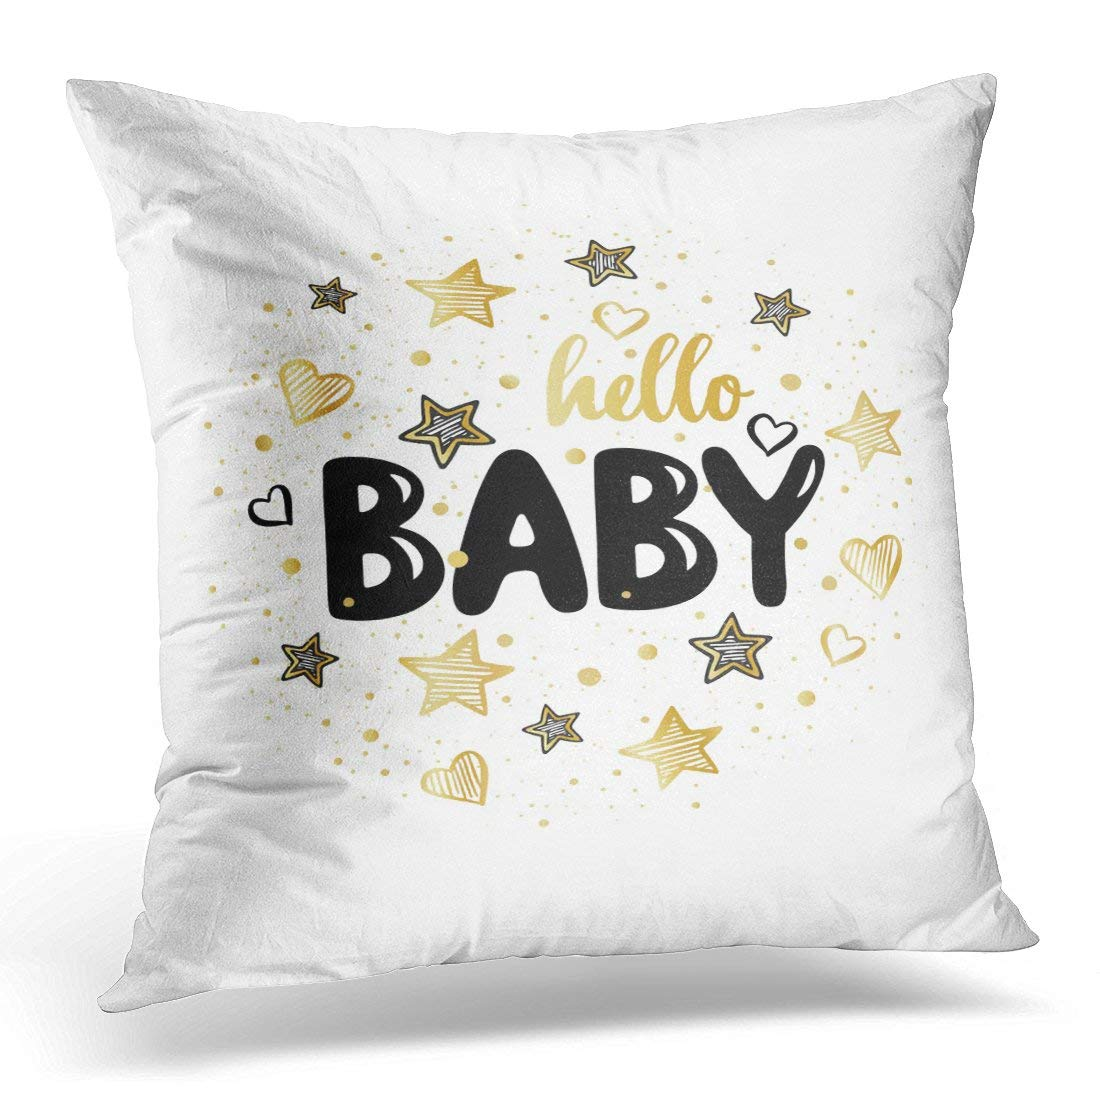 ARHOME Blue Shower Kids in Circle with Black and Gold Stars with Cute Pattern with Lettering Hello Baby Abstract Throw Pillow Case Pillow Cover Sofa Home Decor 16x16 Inches